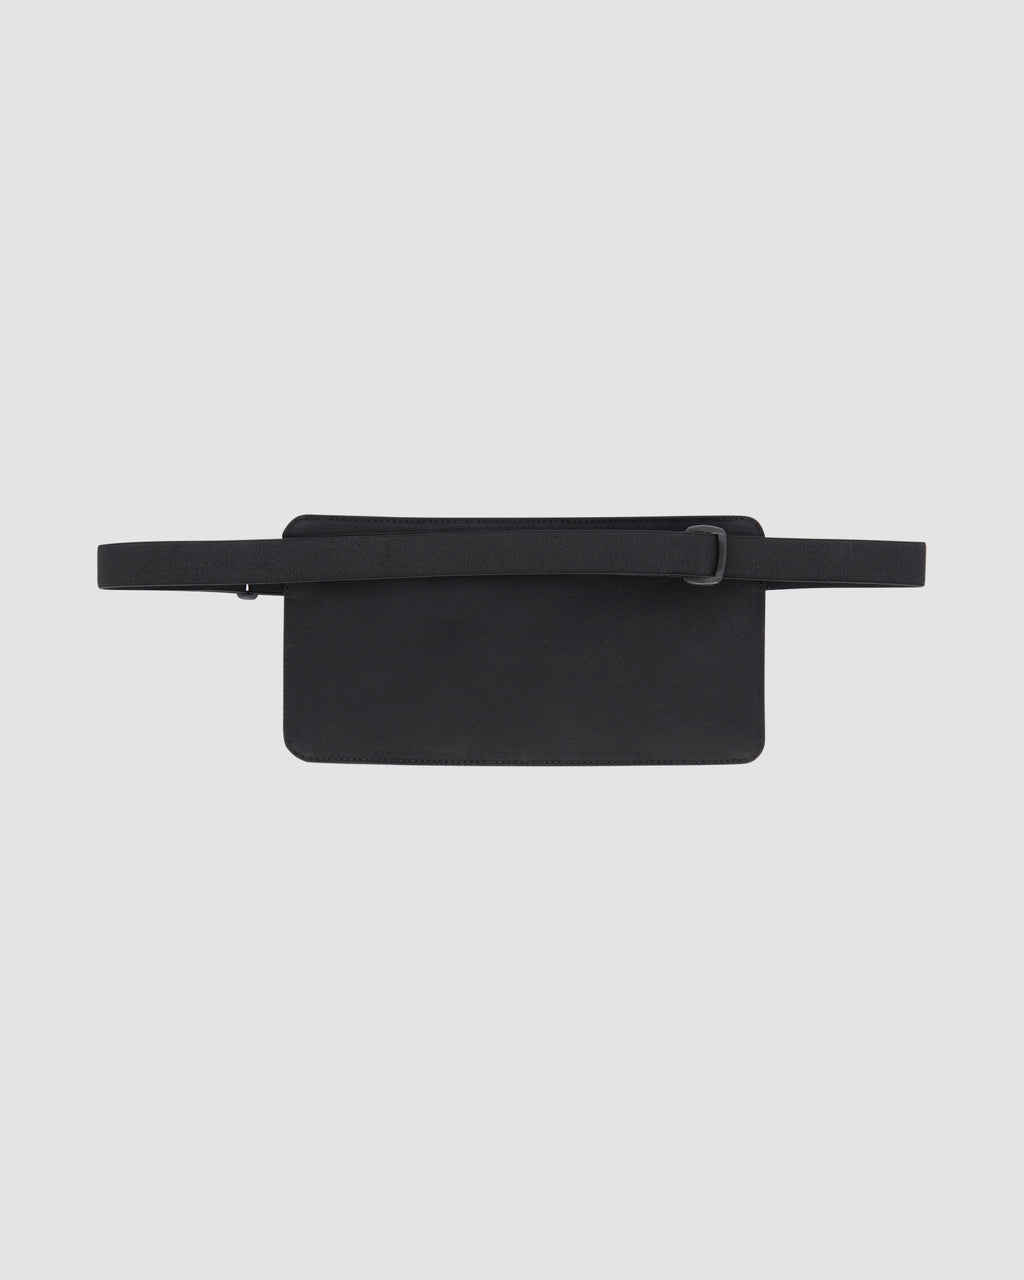 1017 ALYX 9SM | POUCH BELT | Bag | Accessories, Bag Online, Bags, F19, Man, Woman